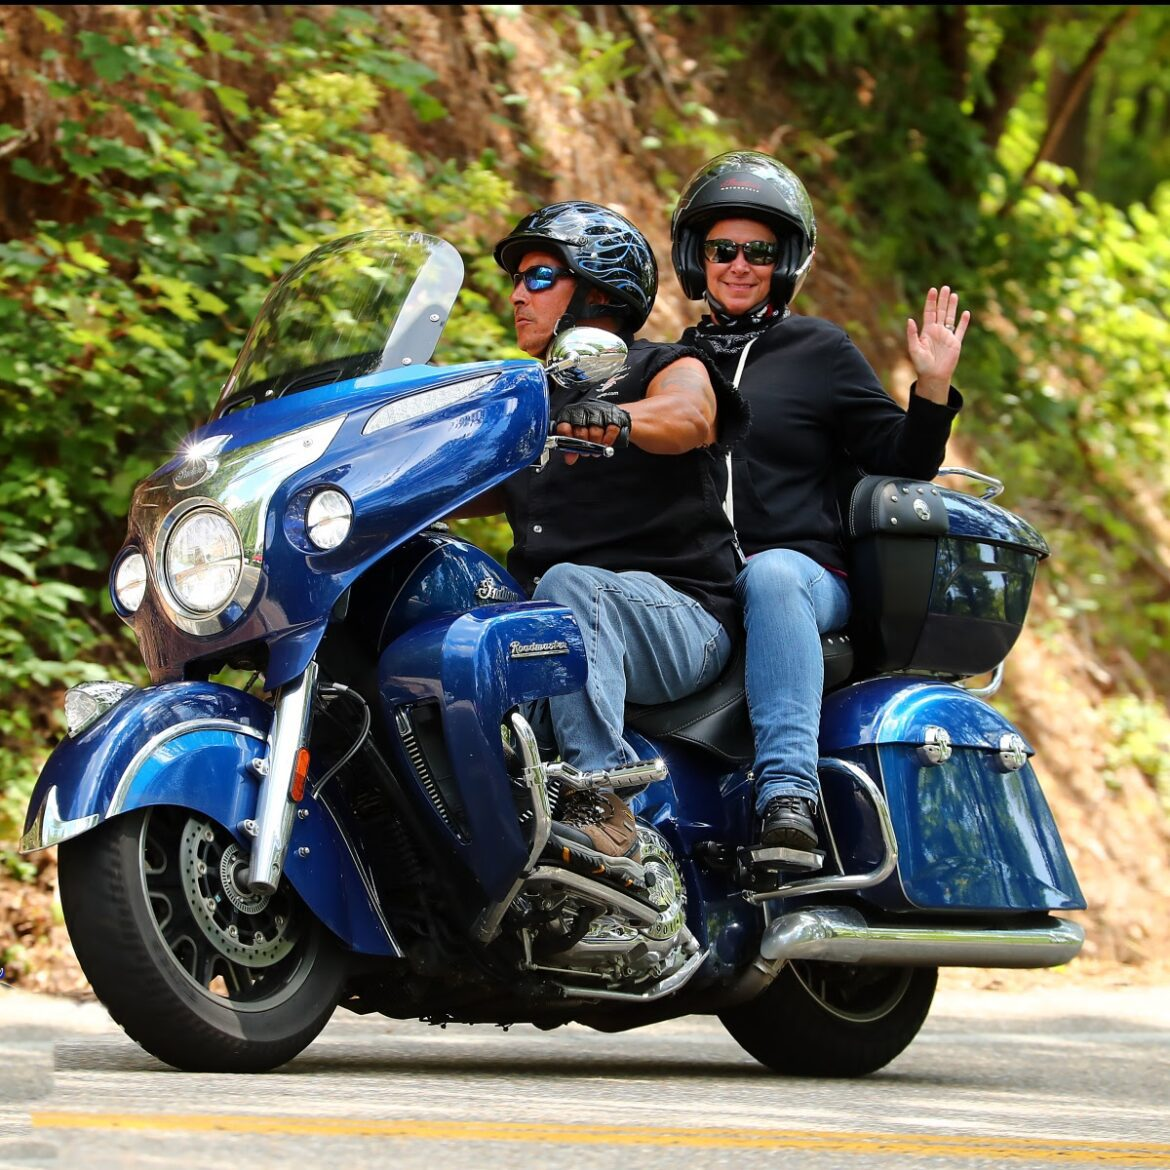 Motorcycle Safety for Passengers